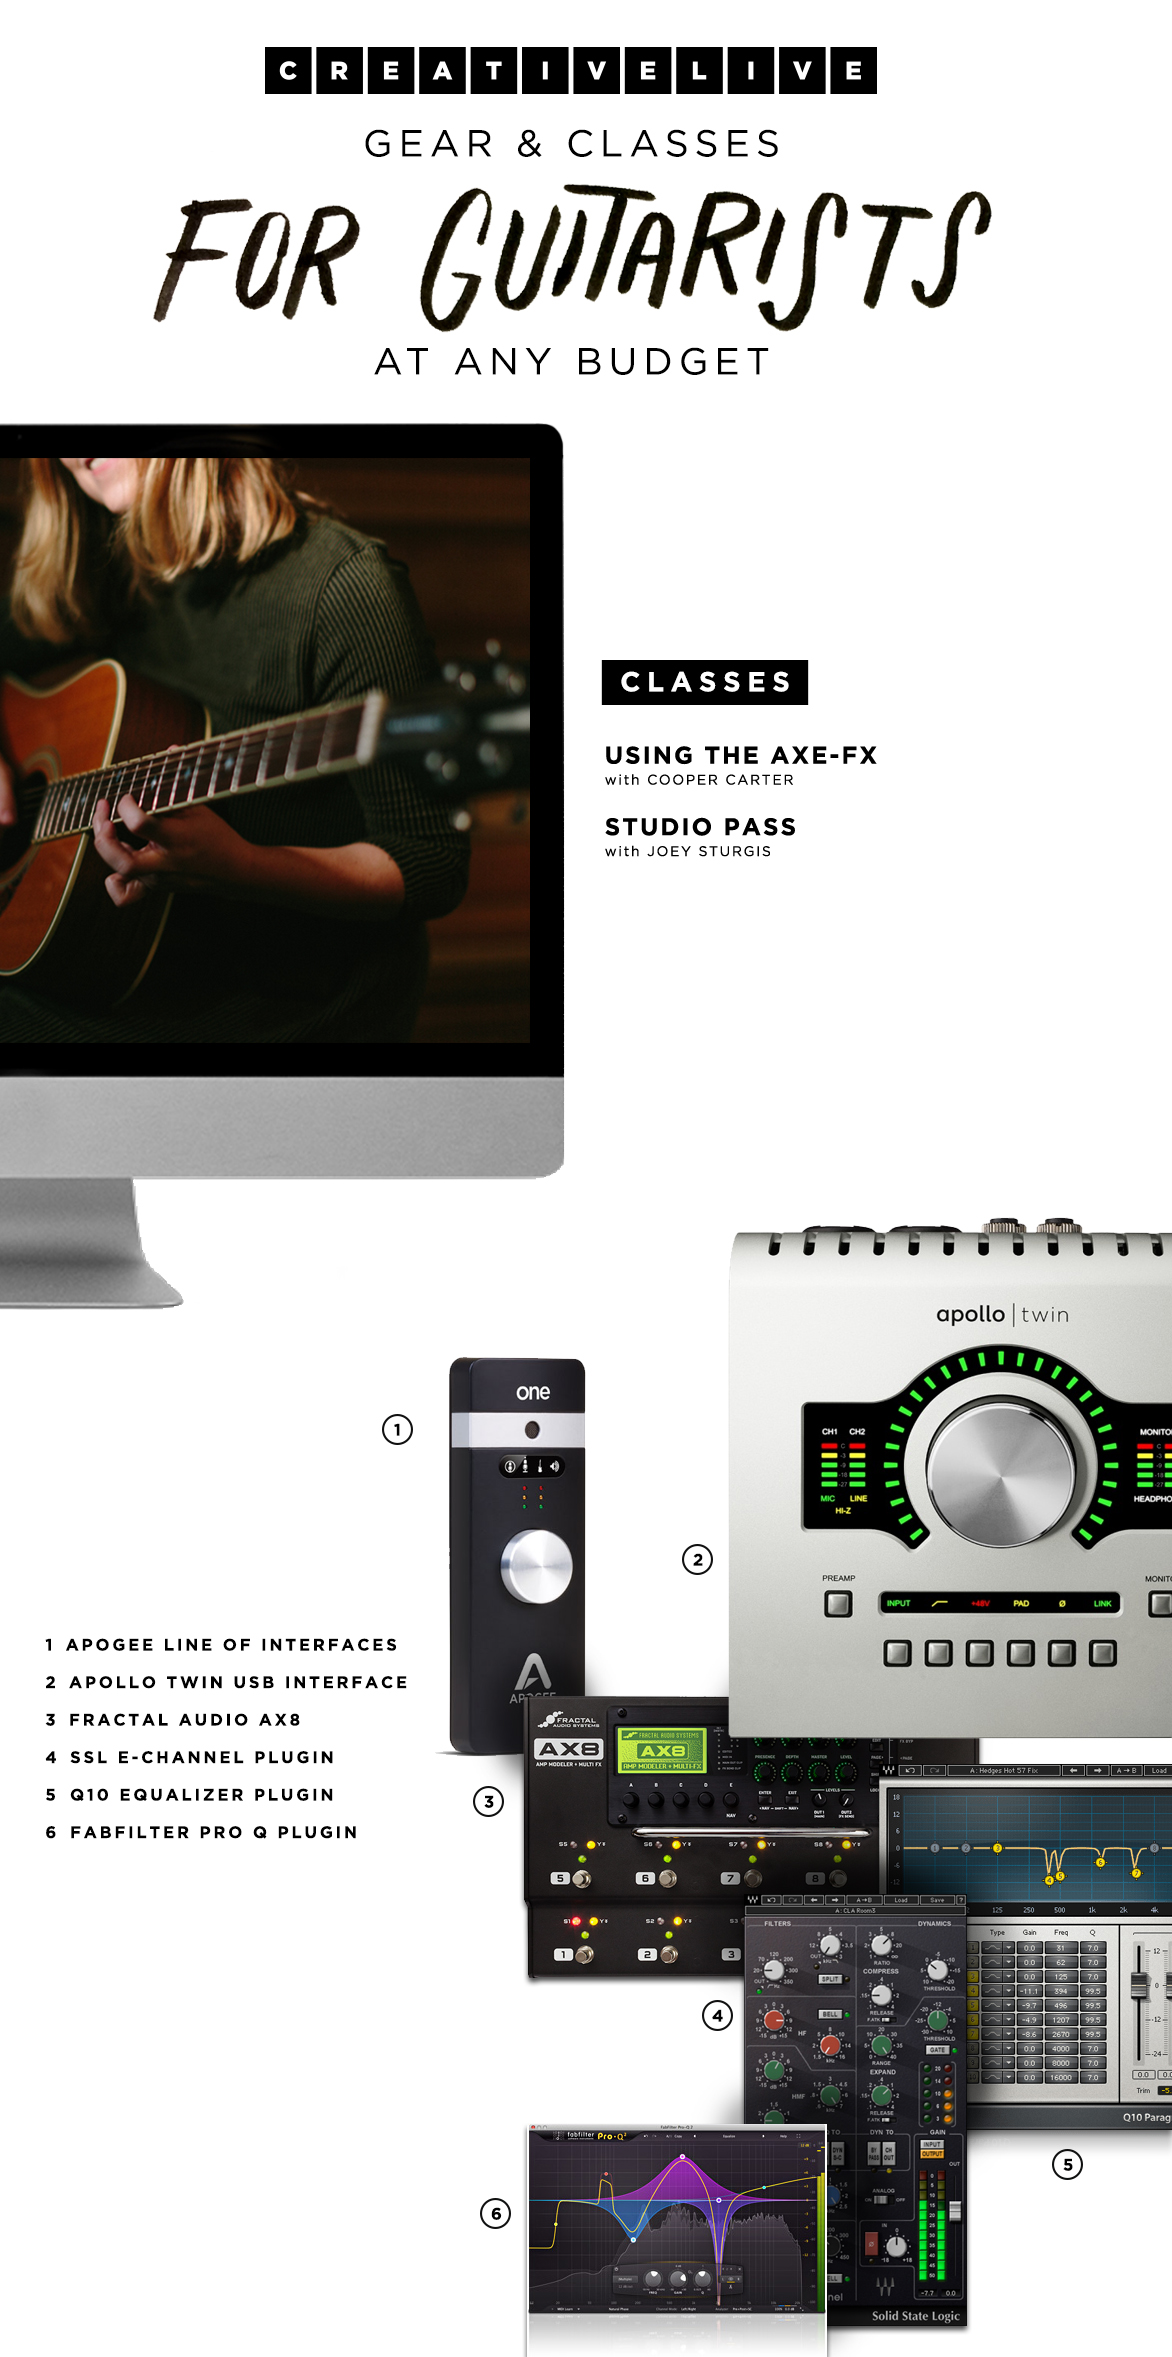 Gift_Guide_Audio_Hi_ResGear & classes for guitarists at any budget